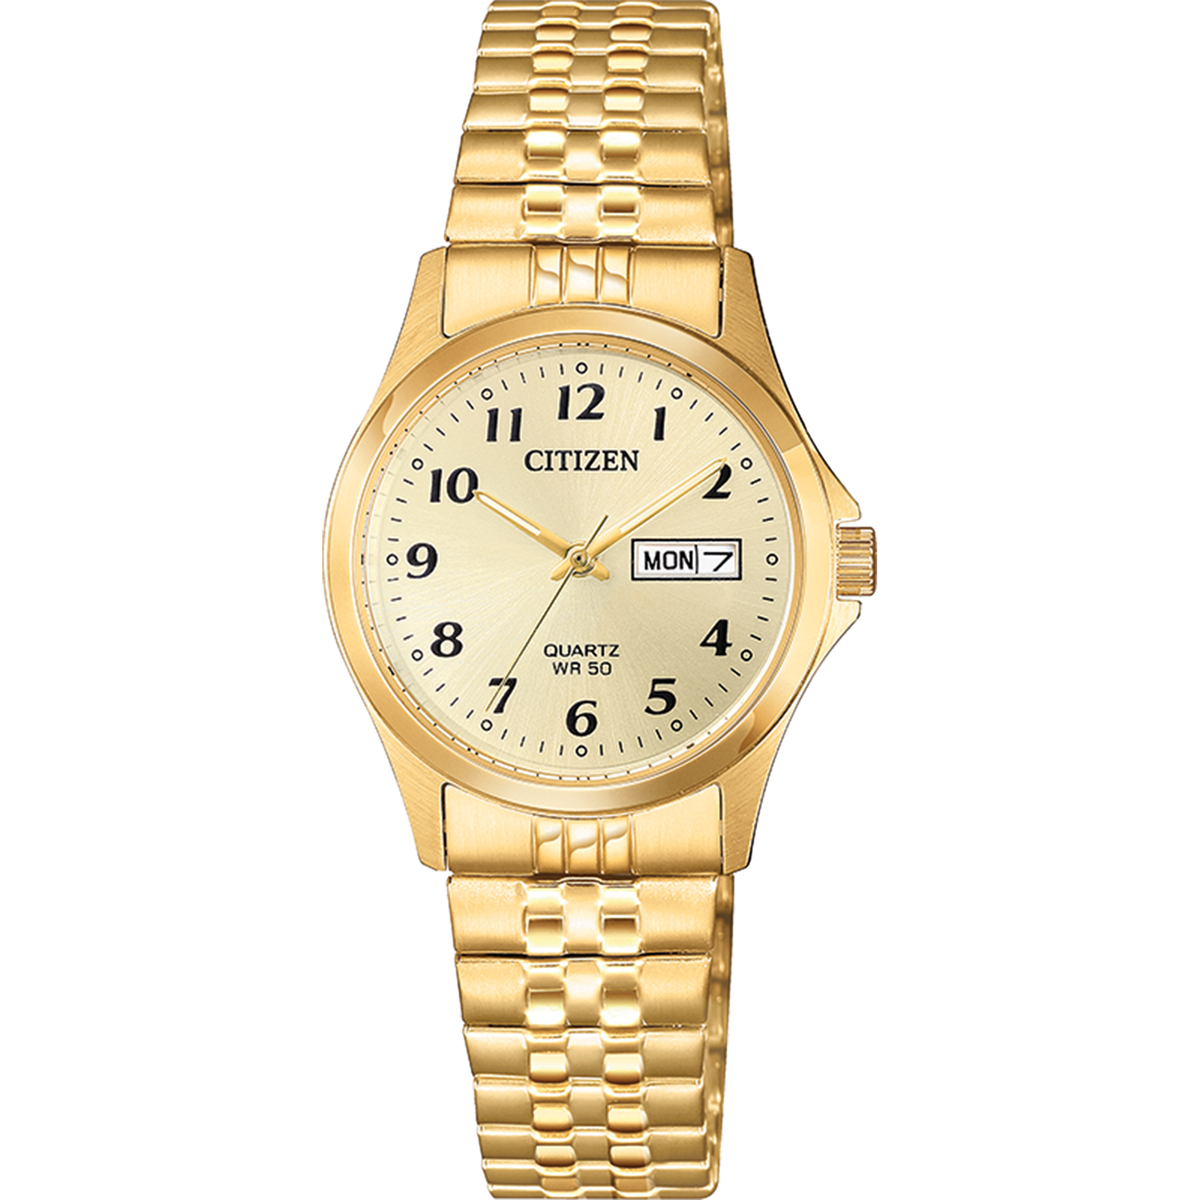 Citizen Quartz - 26mm Gold Tone Expansion